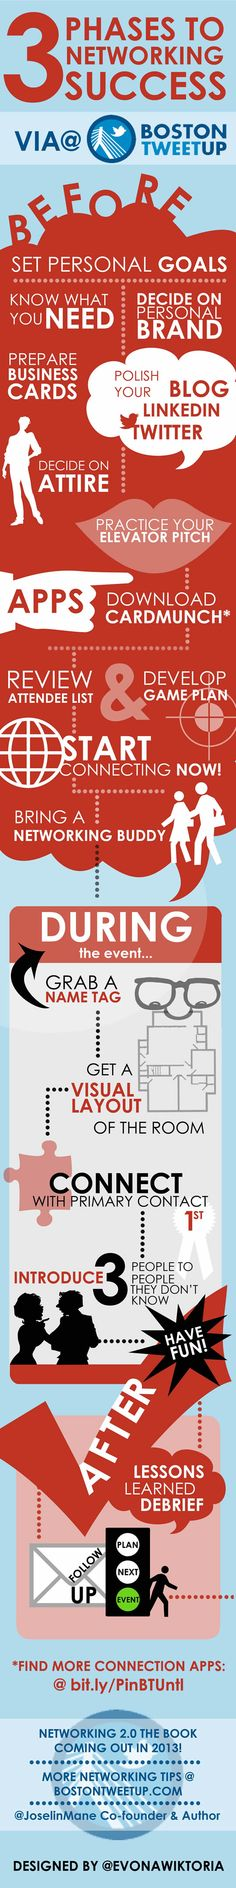 Networking 2.0: What to do before, during, and after a networking event